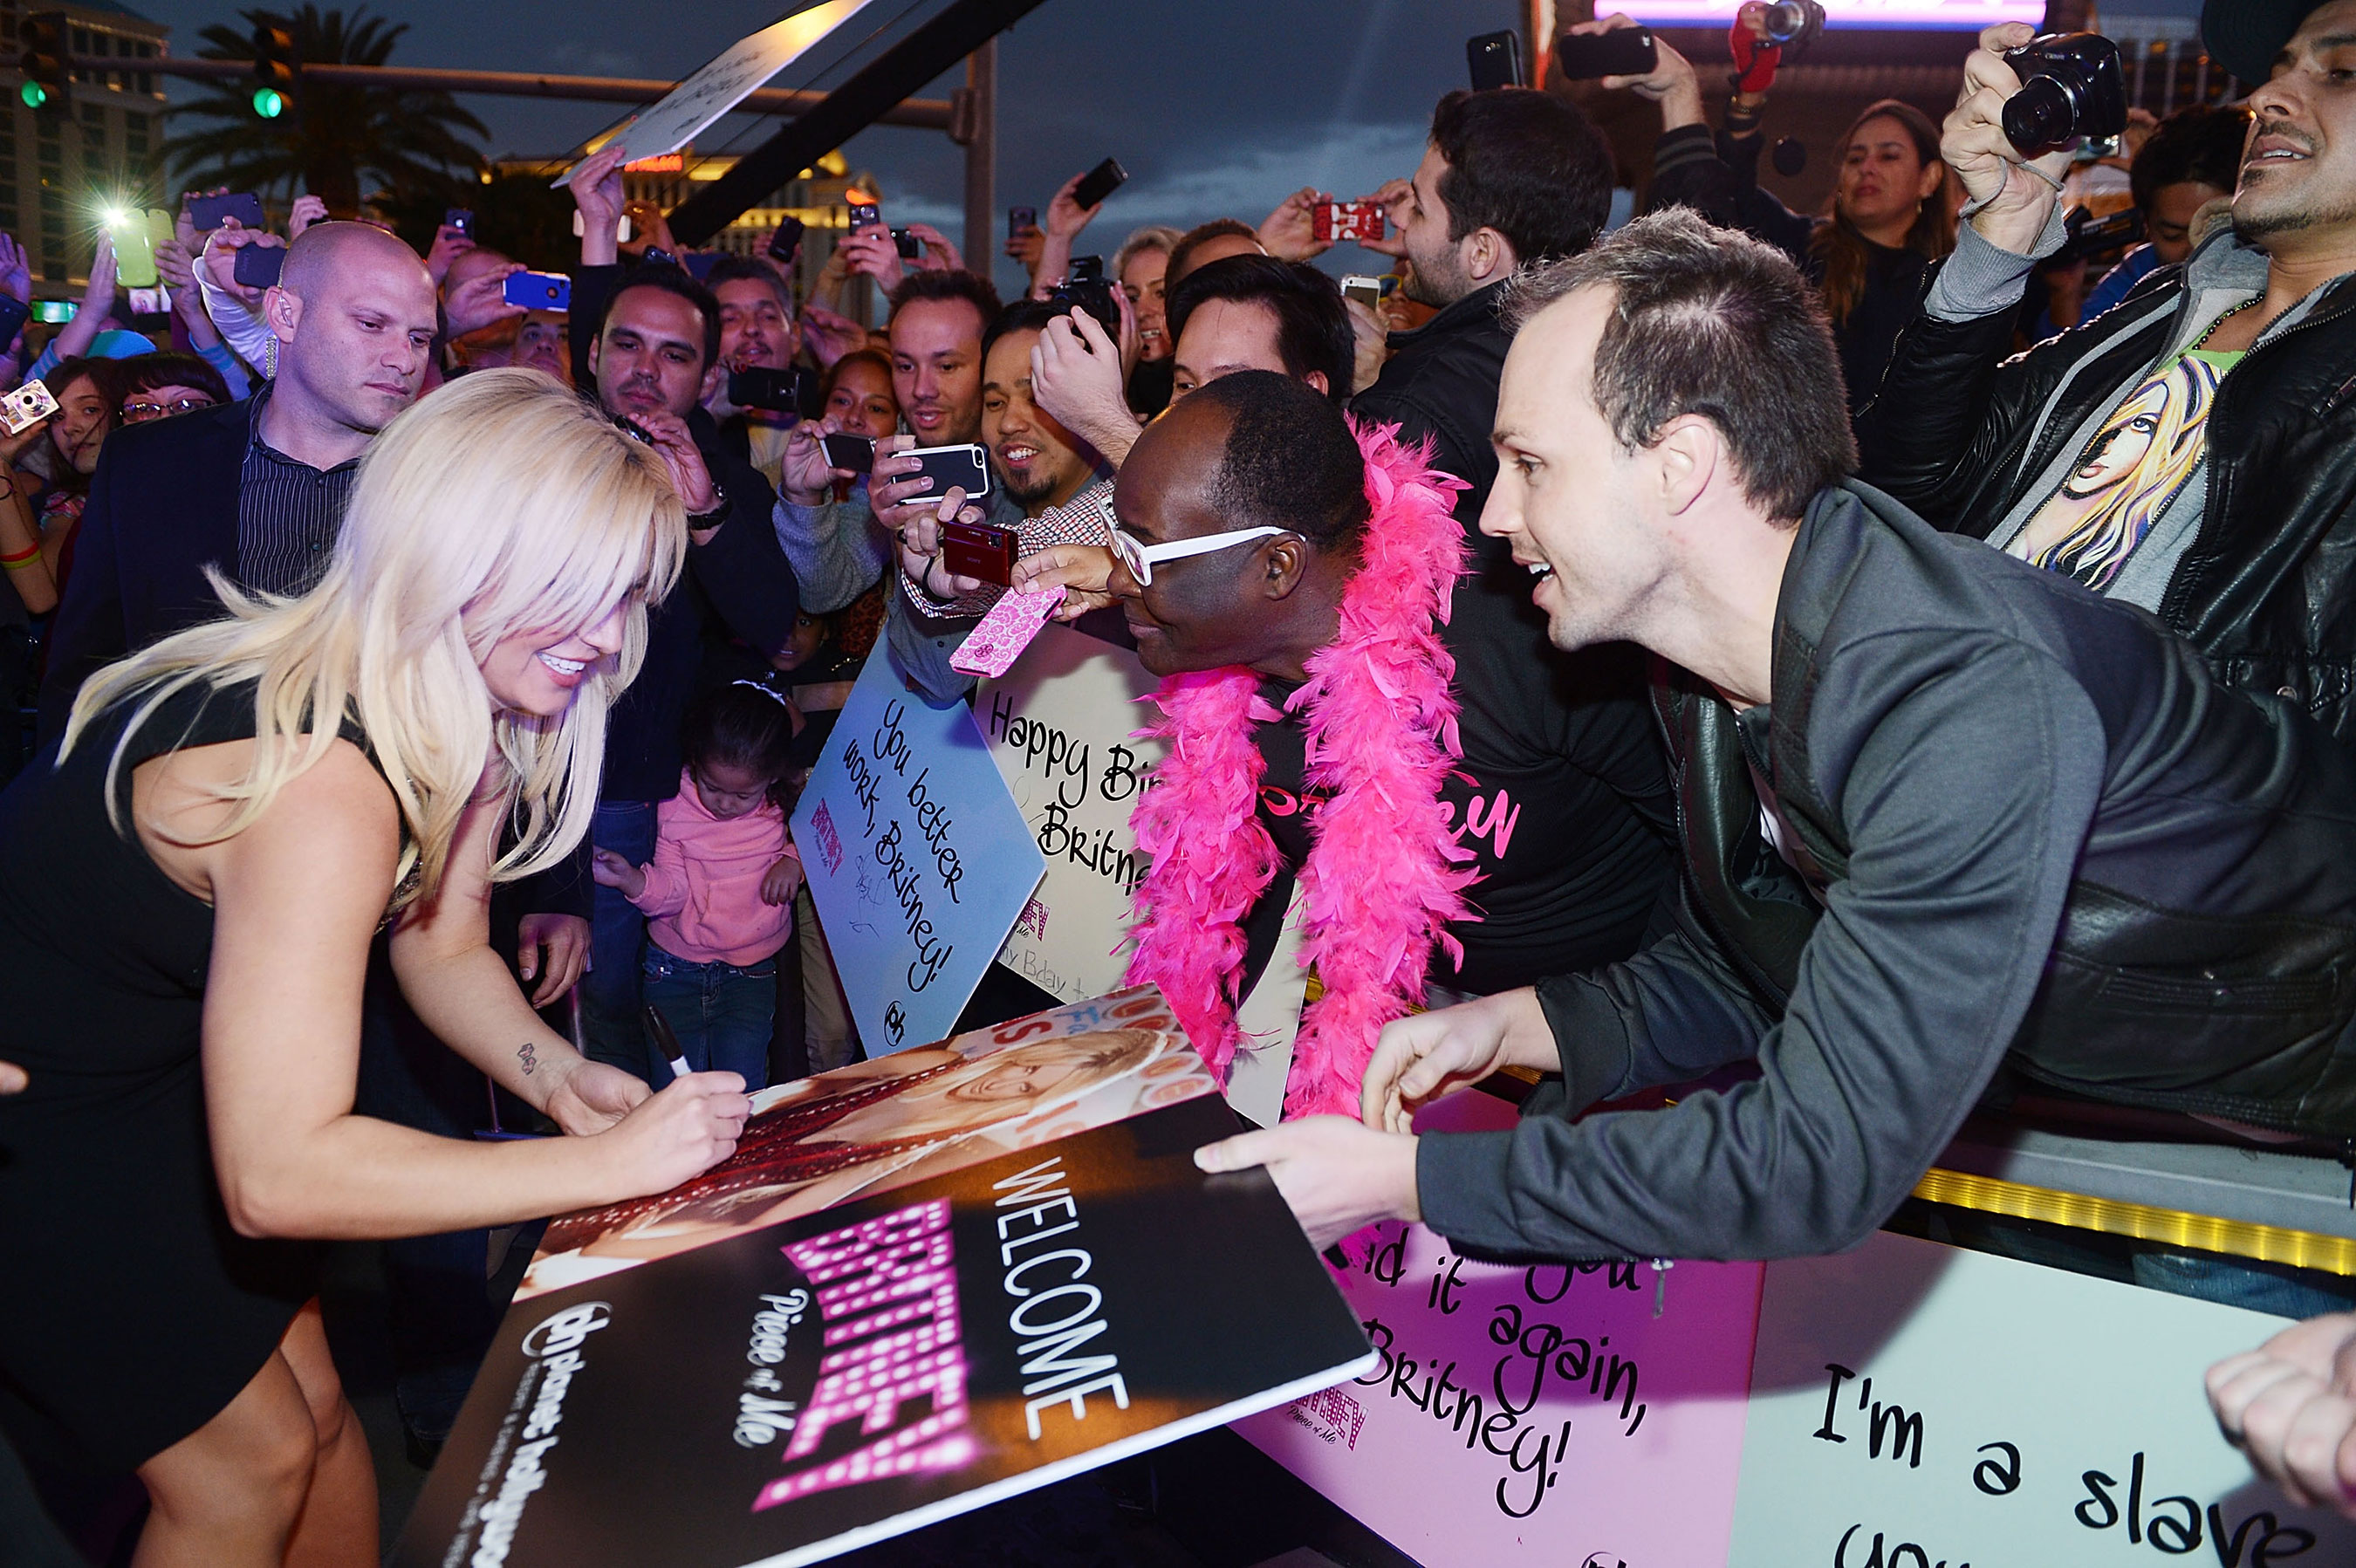 Britney spears celebrates official arrival to las vegas with britney spears celebrates official arrival to las vegas with elaborate welcome event at planet hollywood resort casino queer me up m4hsunfo